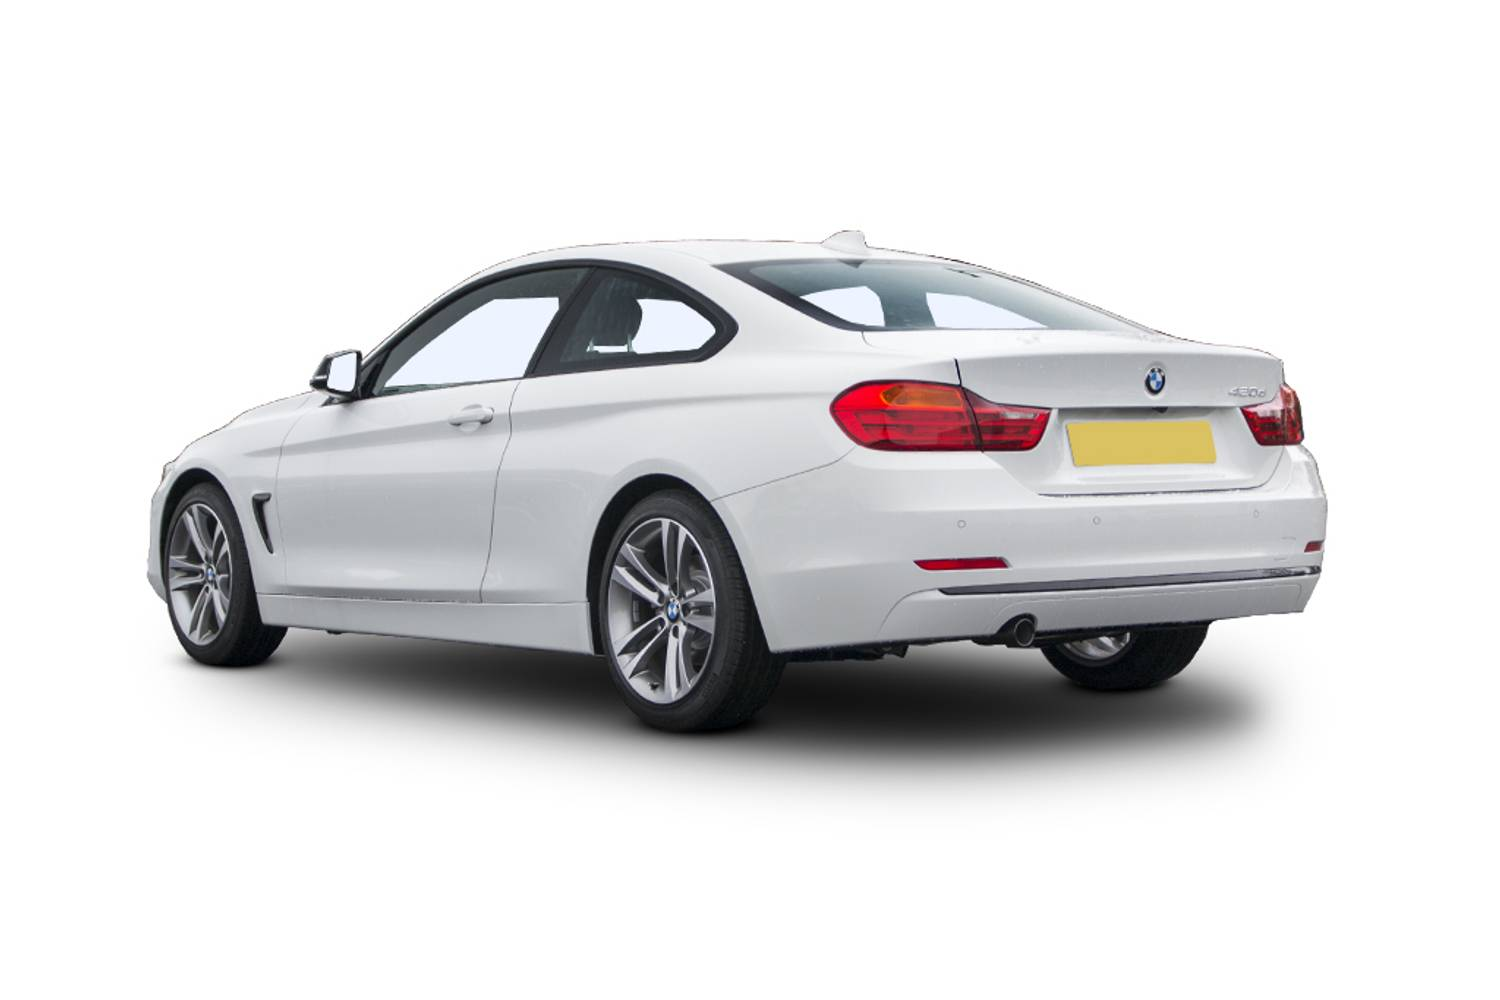 BMW 4 Series Coupe 2dr Rear Three Quarter